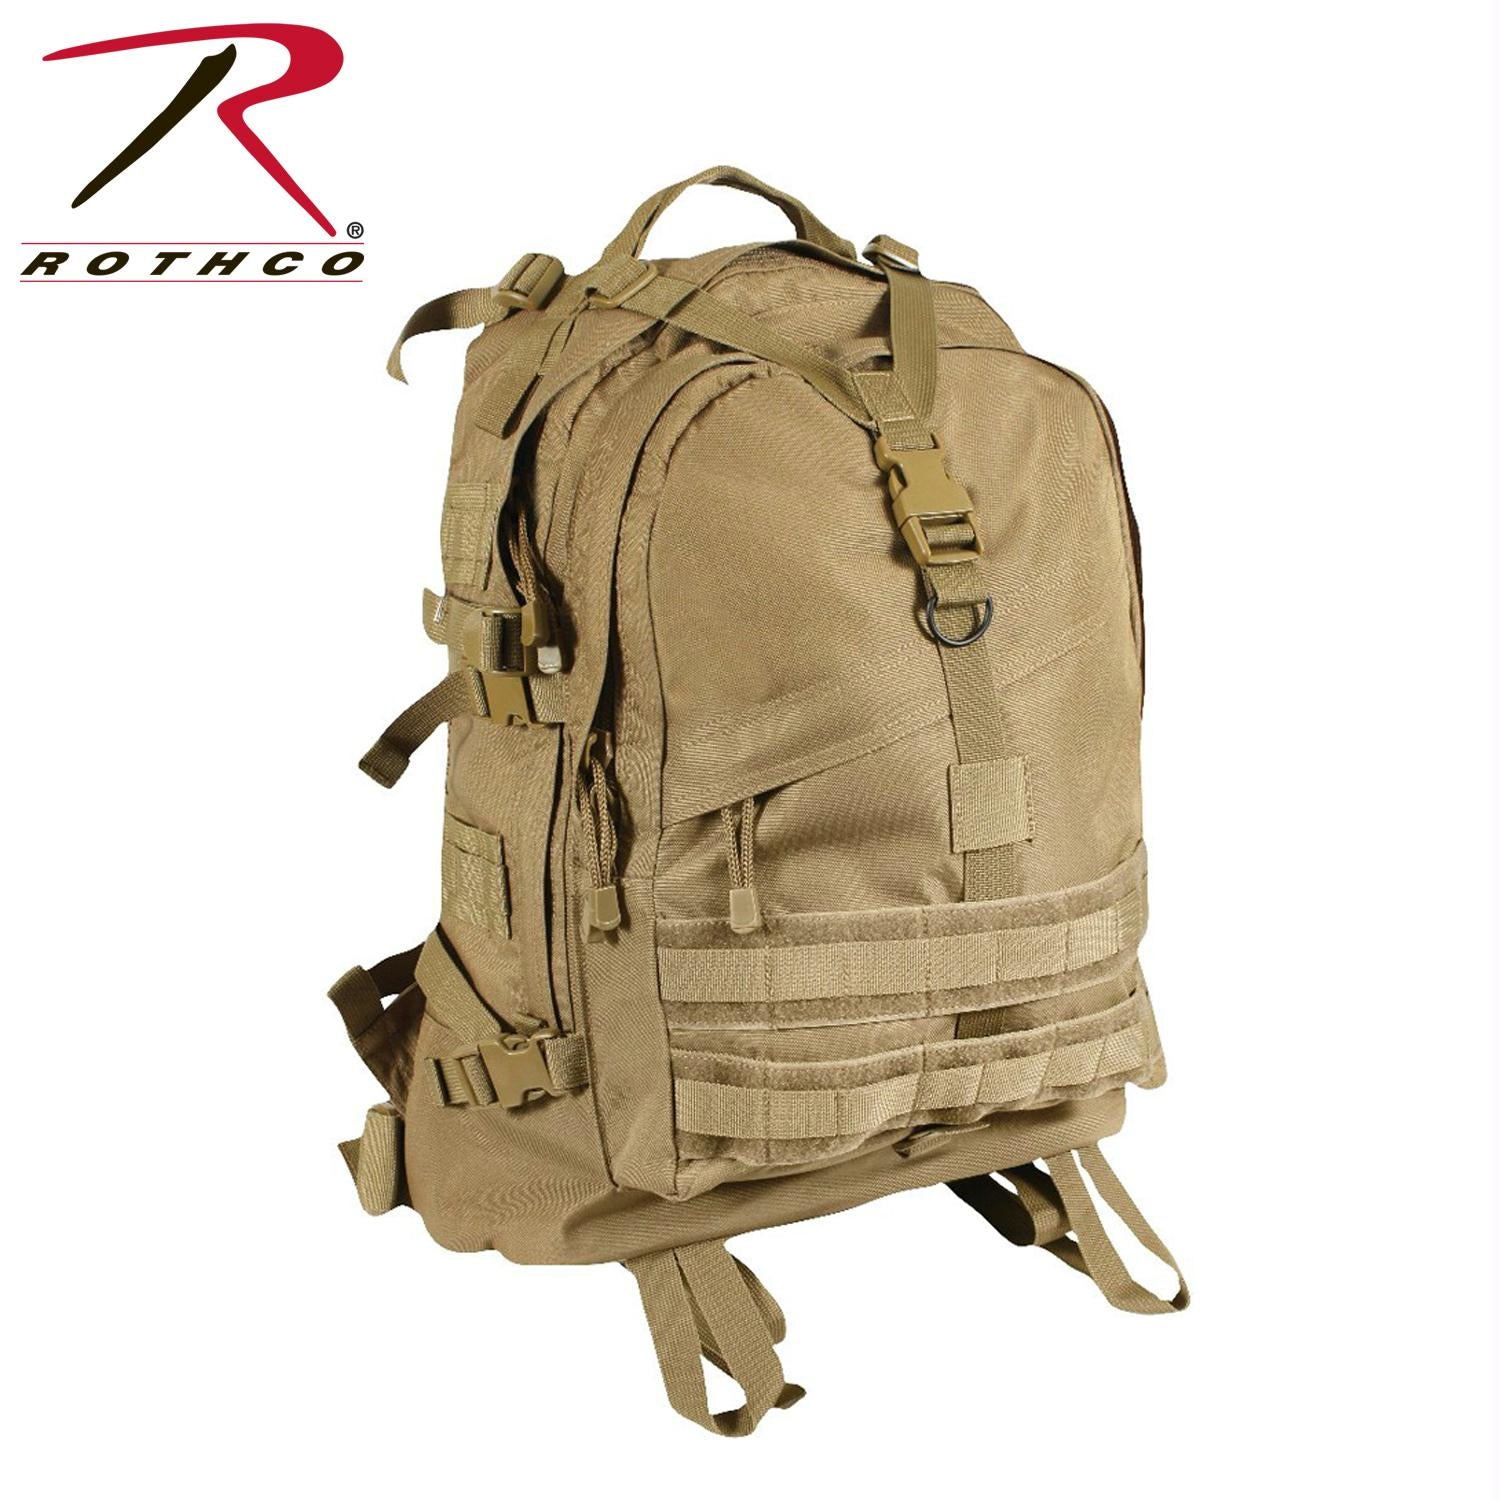 Rothco Large Transport Pack - Coyote Brown